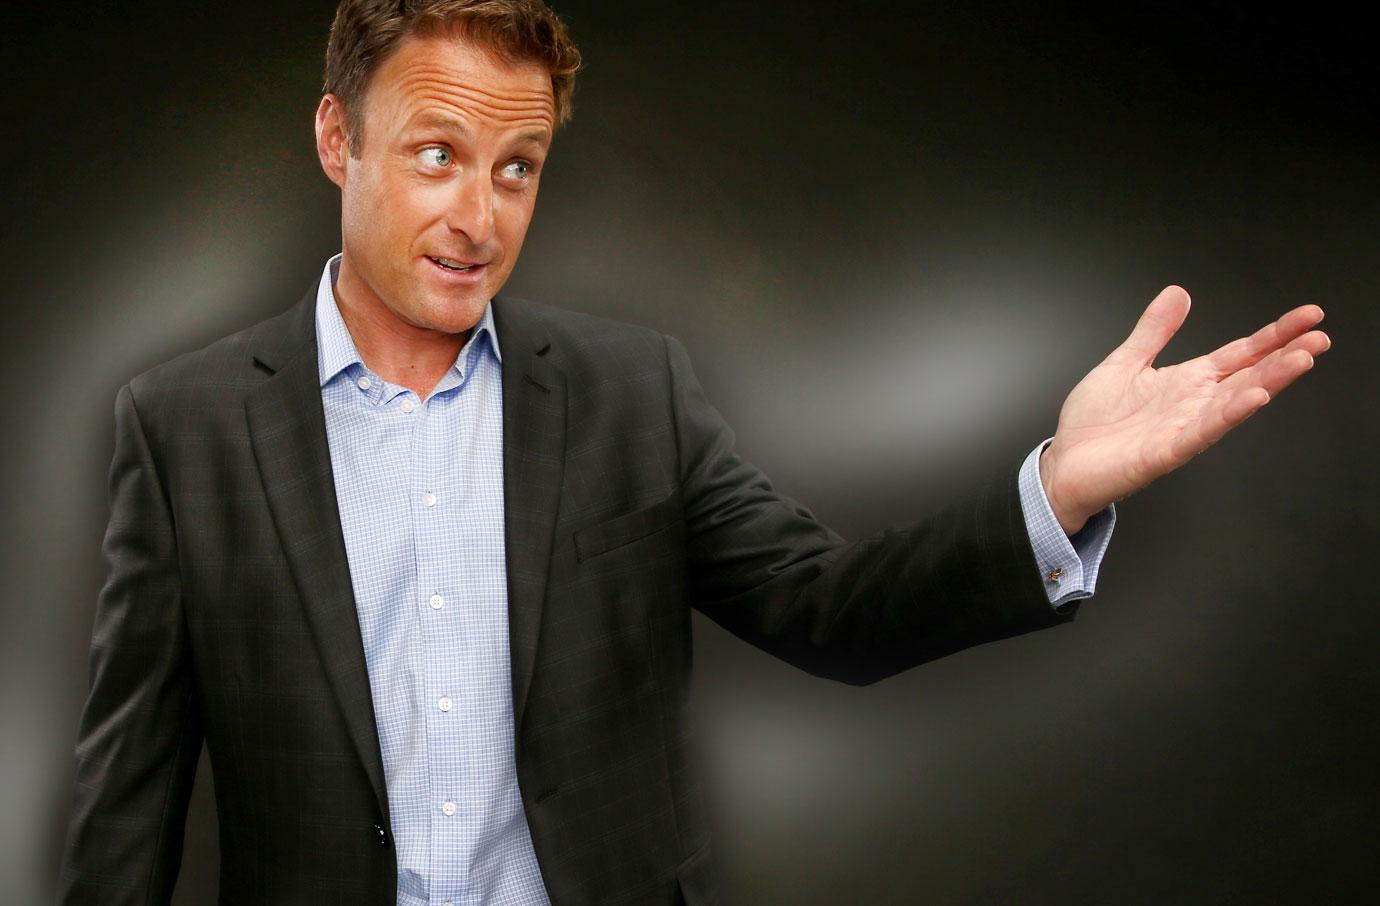 Bachelor In Paradise Sexual Assault Chris Harrison Statement